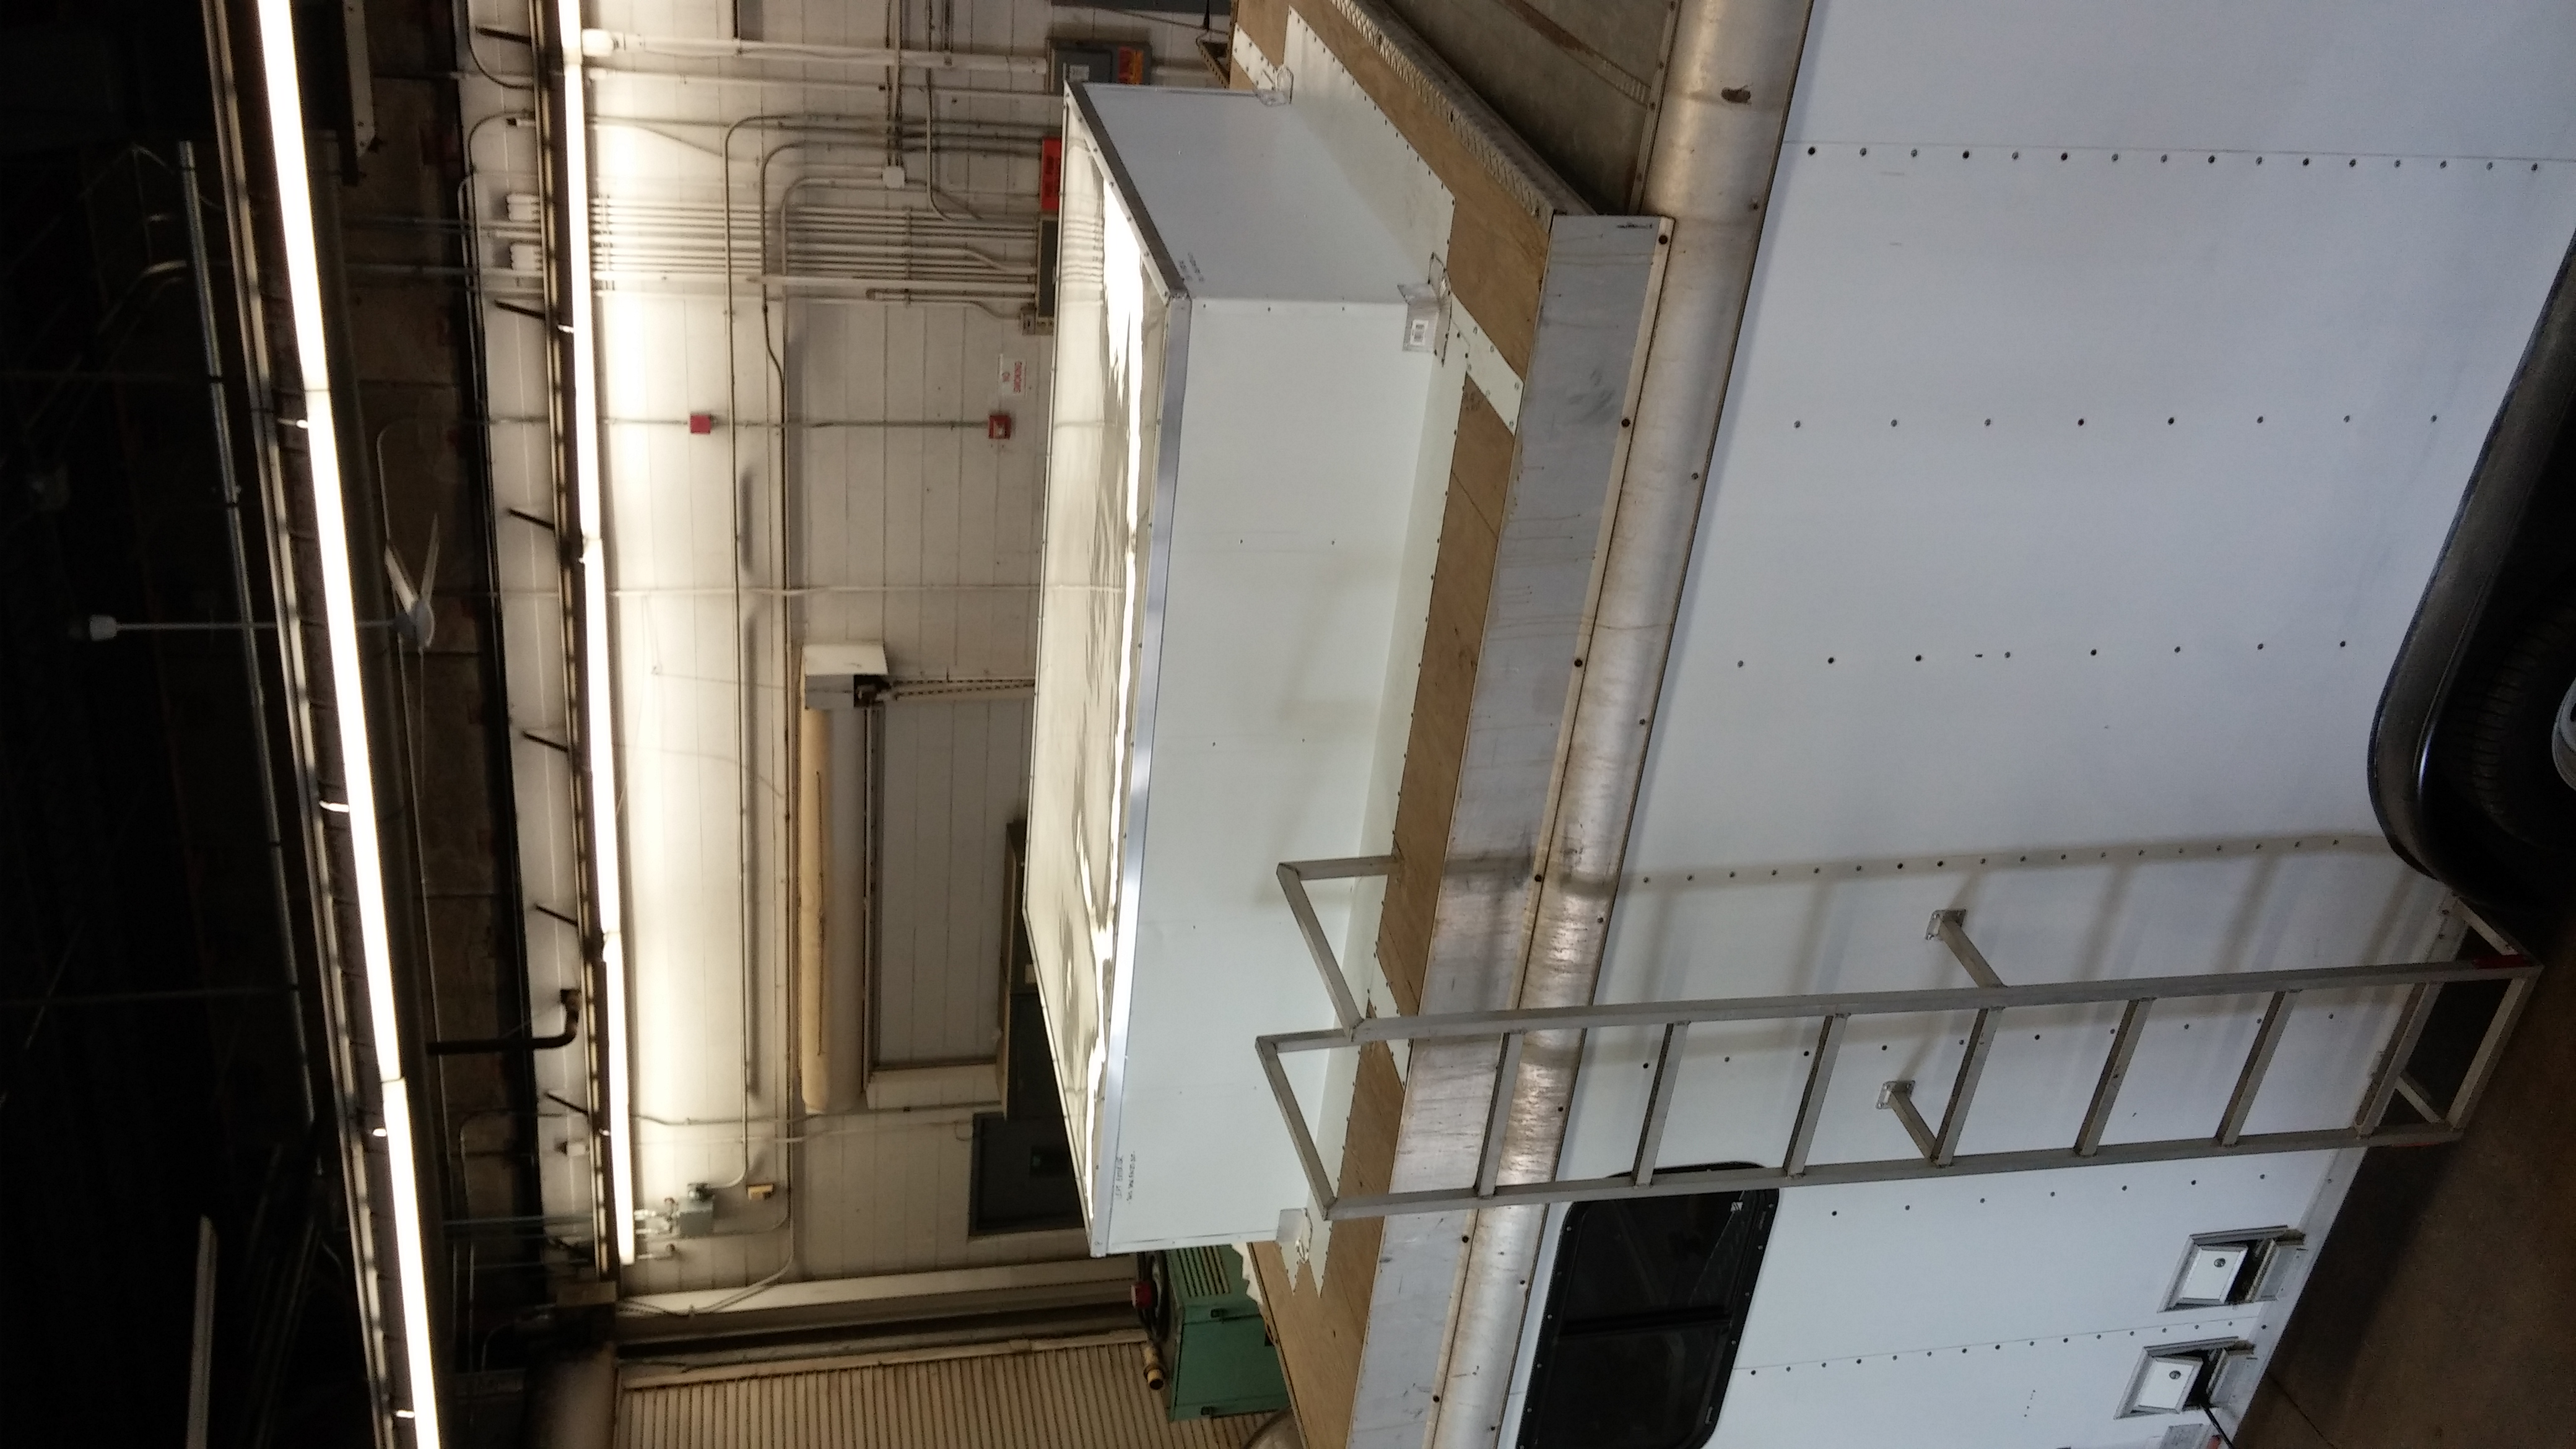 This image shows the custom modification to the X-BADGER research trailer. The top of the white box is a custom built radome that allows for the radar beam to travel through, but protects the interior of the trailer from rain and hail.